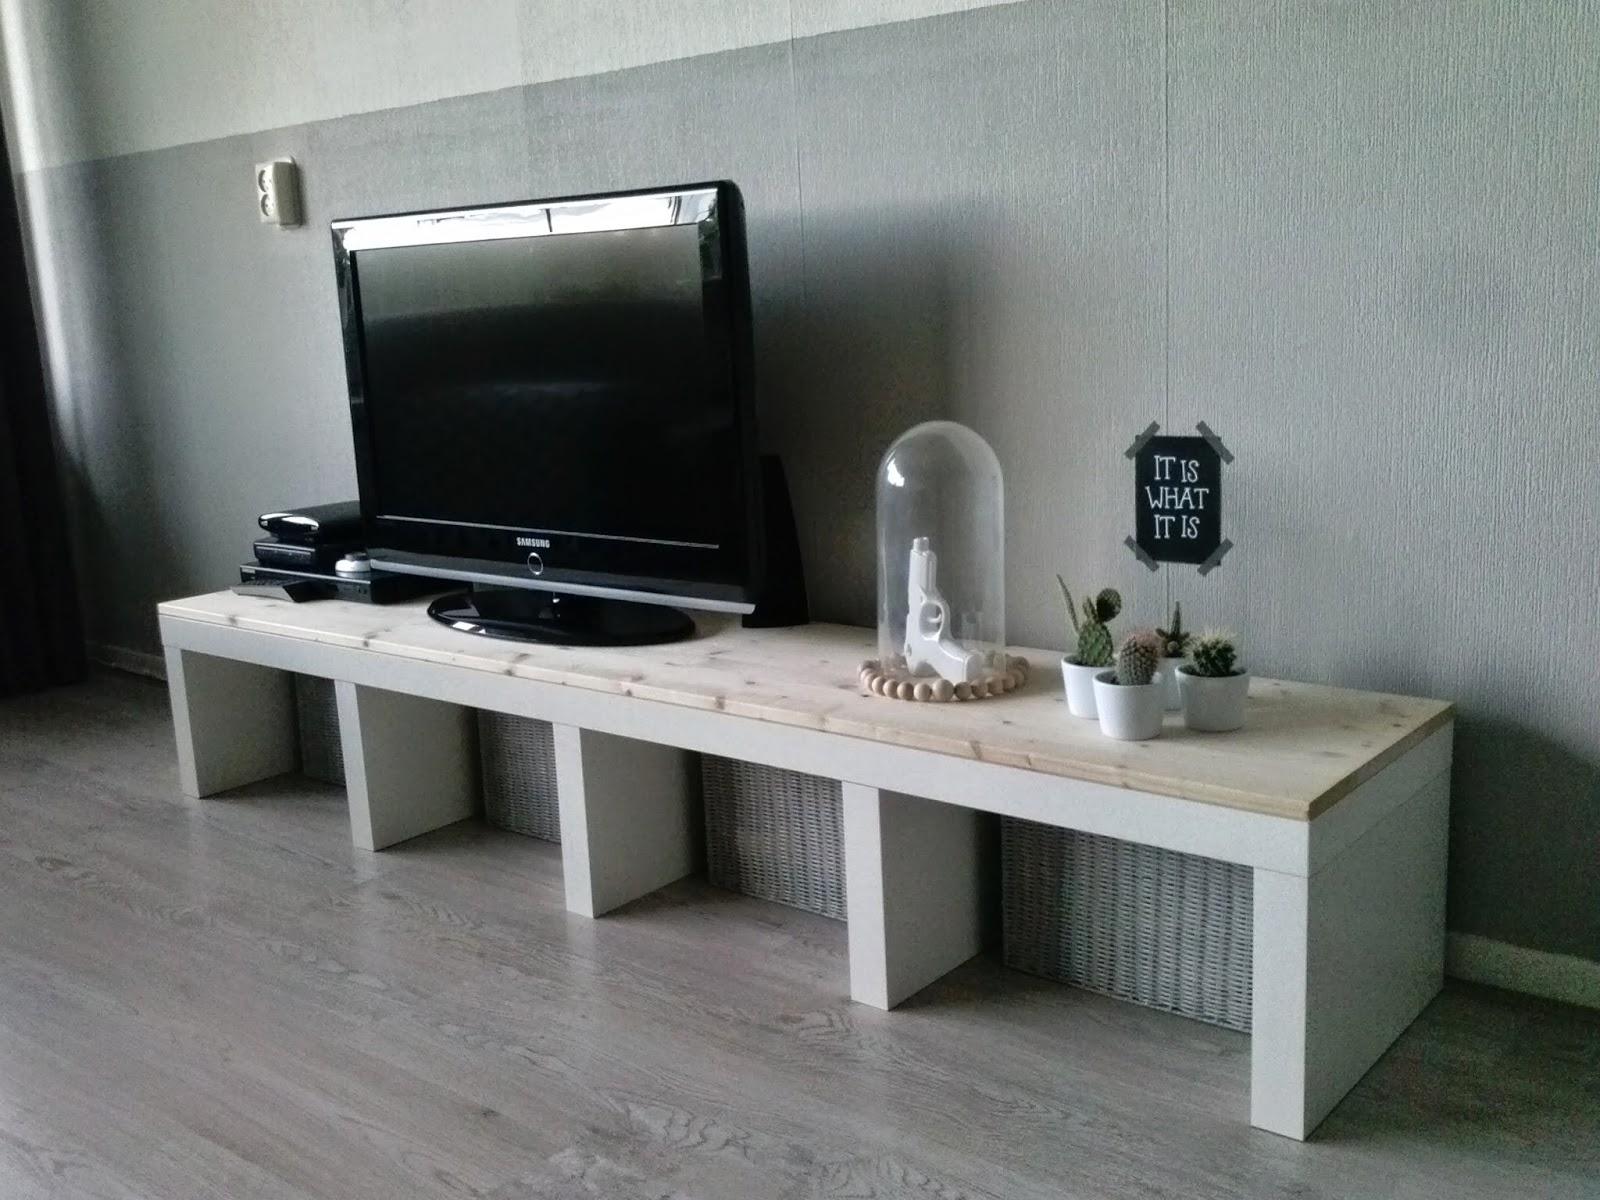 Ikea Tv Tafel : Ikea tv meubel lack archidev